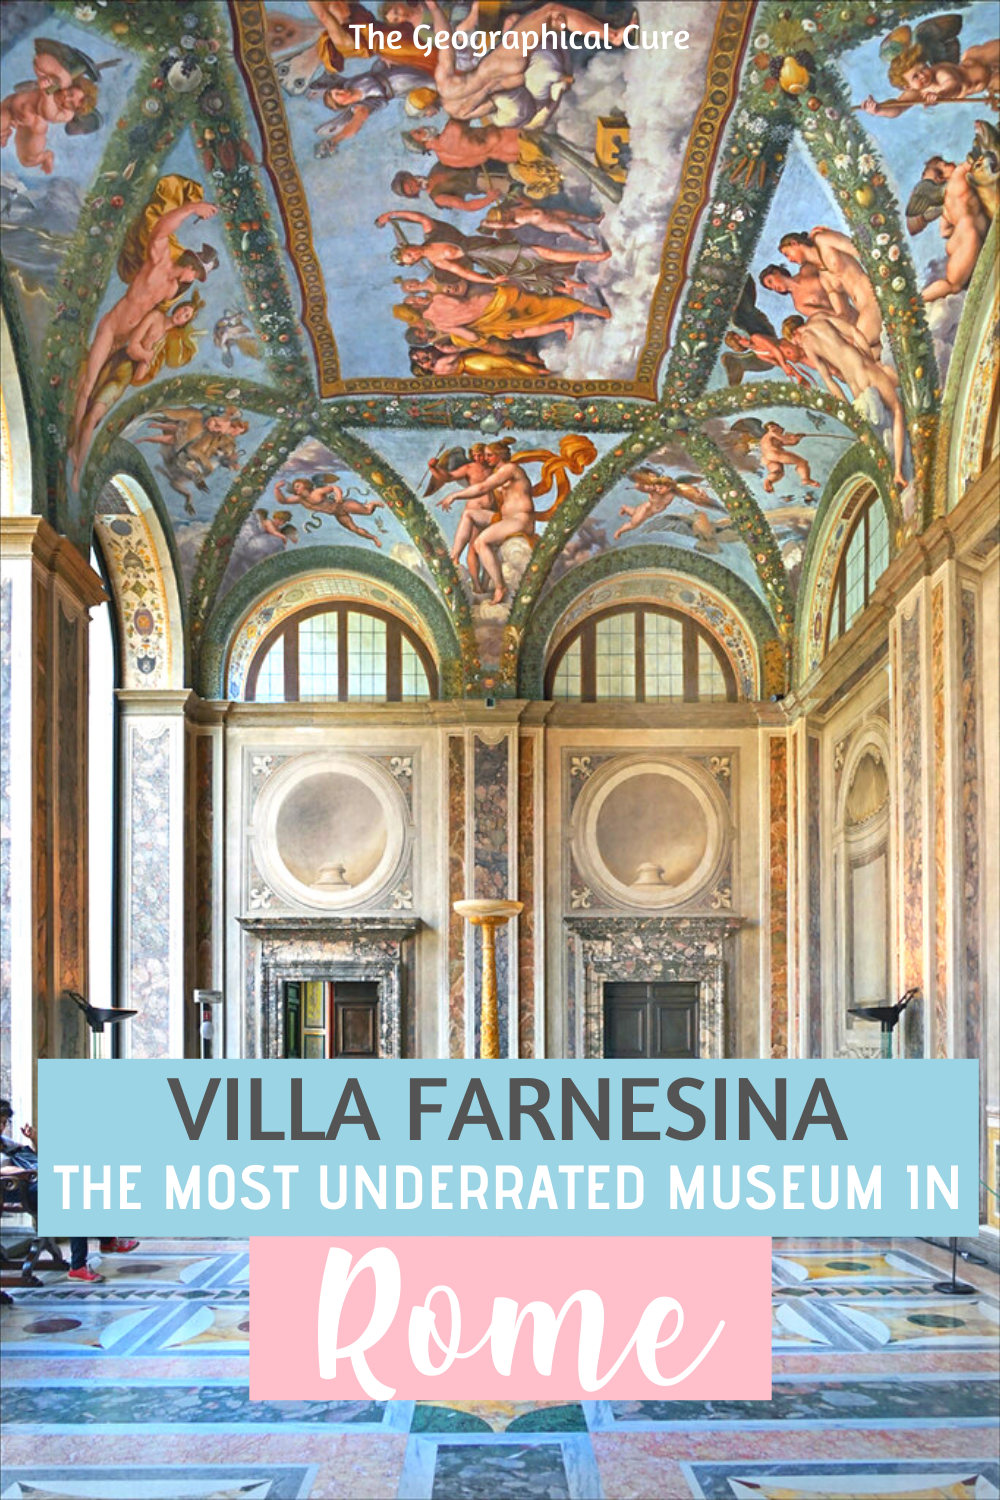 guide to Villa Farnesina, Rome's most underrated museum and home to secret Raphael frescos